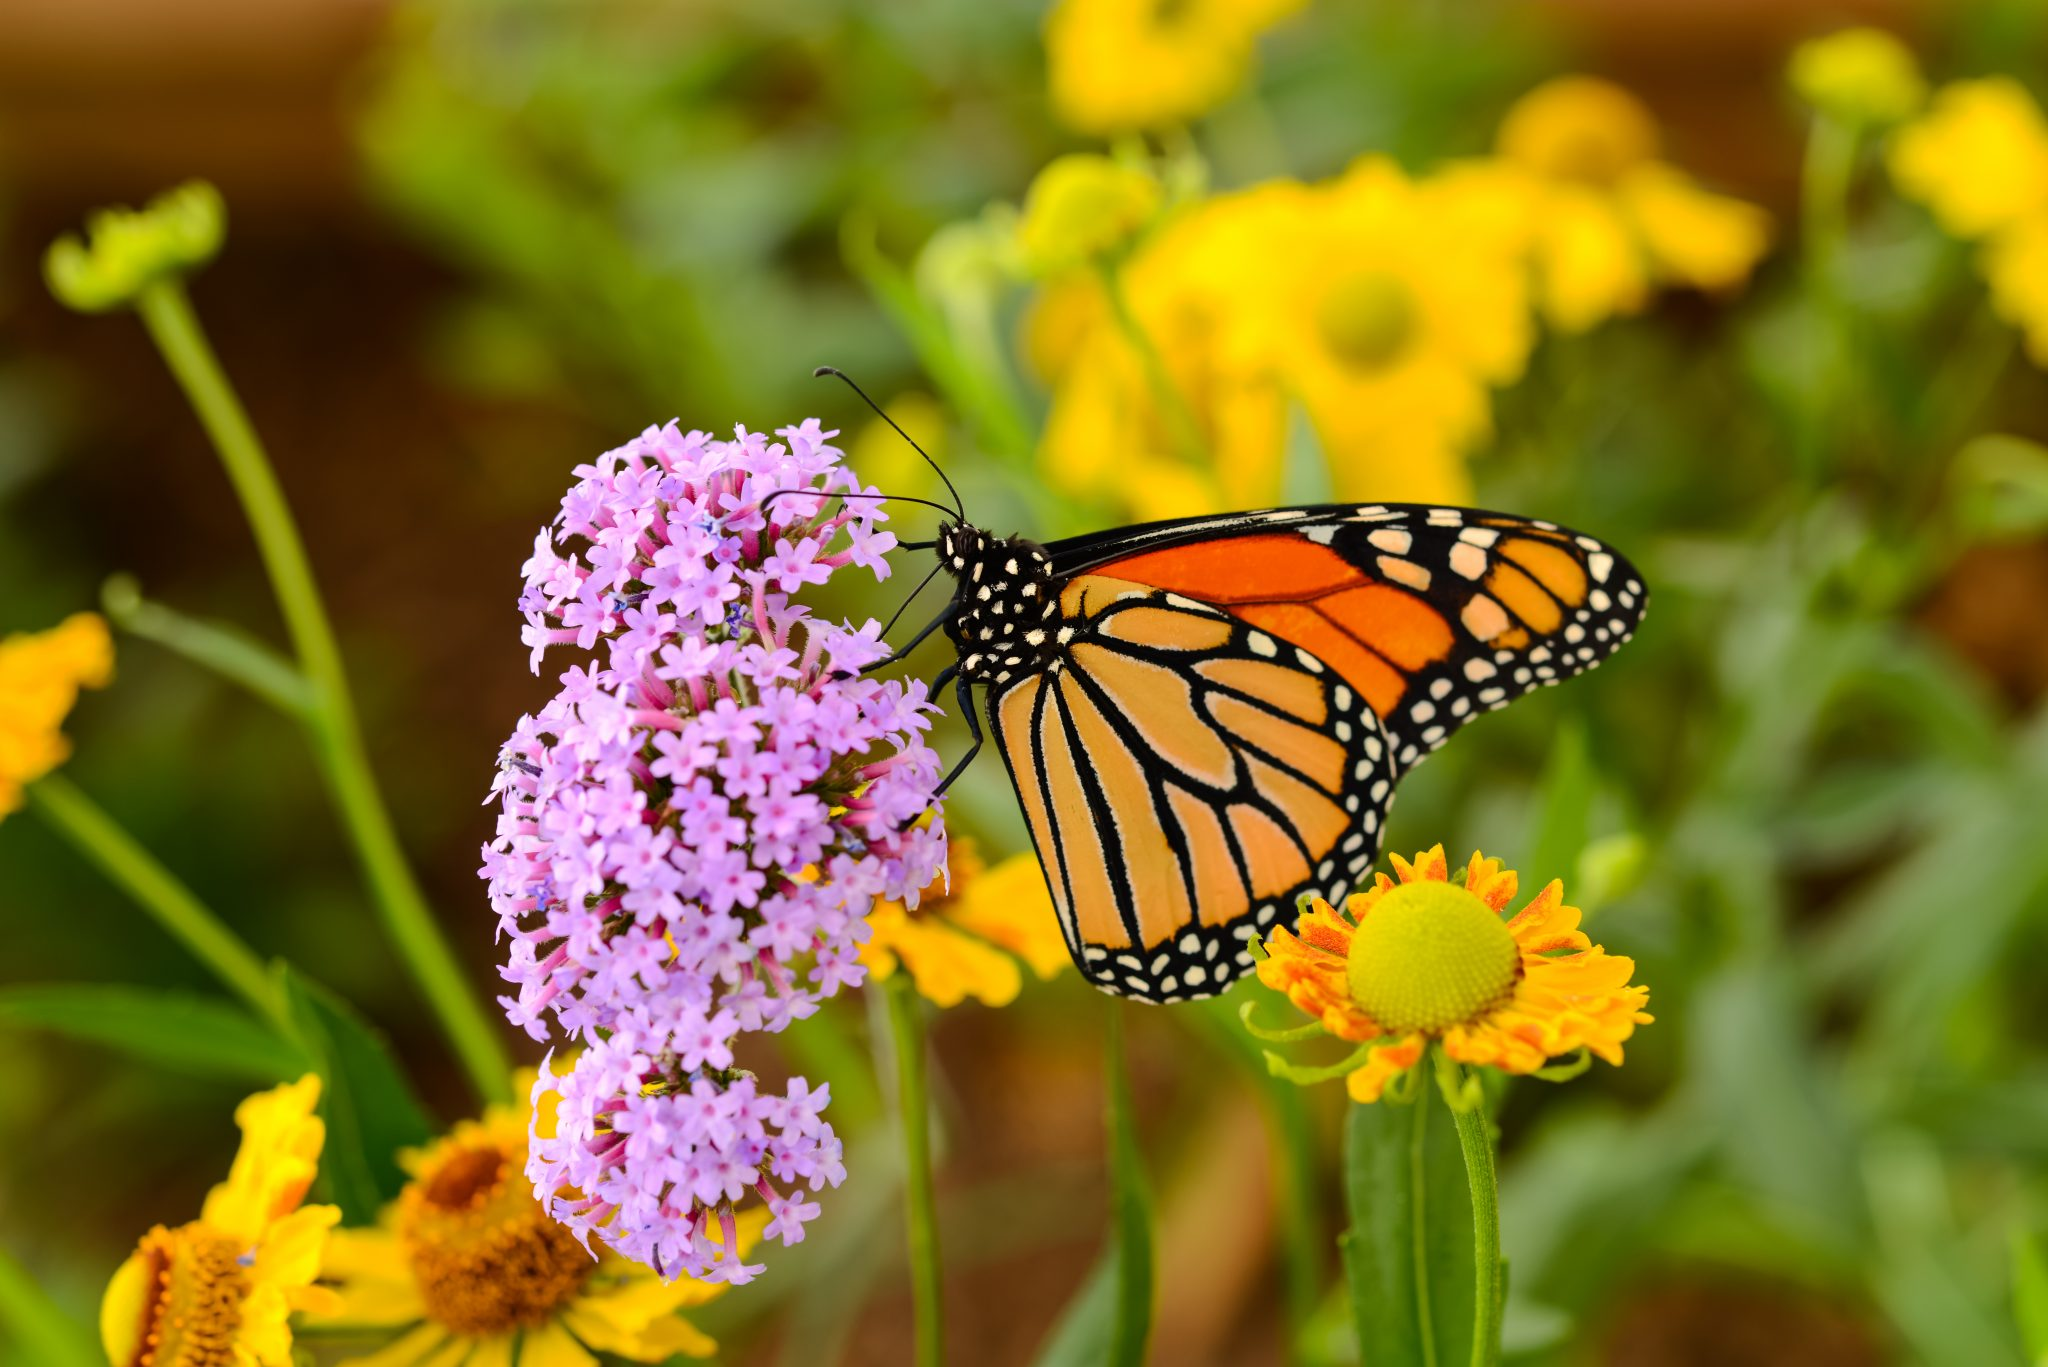 Petition: List Monarch Butterflies as Threatened Under the Endangered Species Act